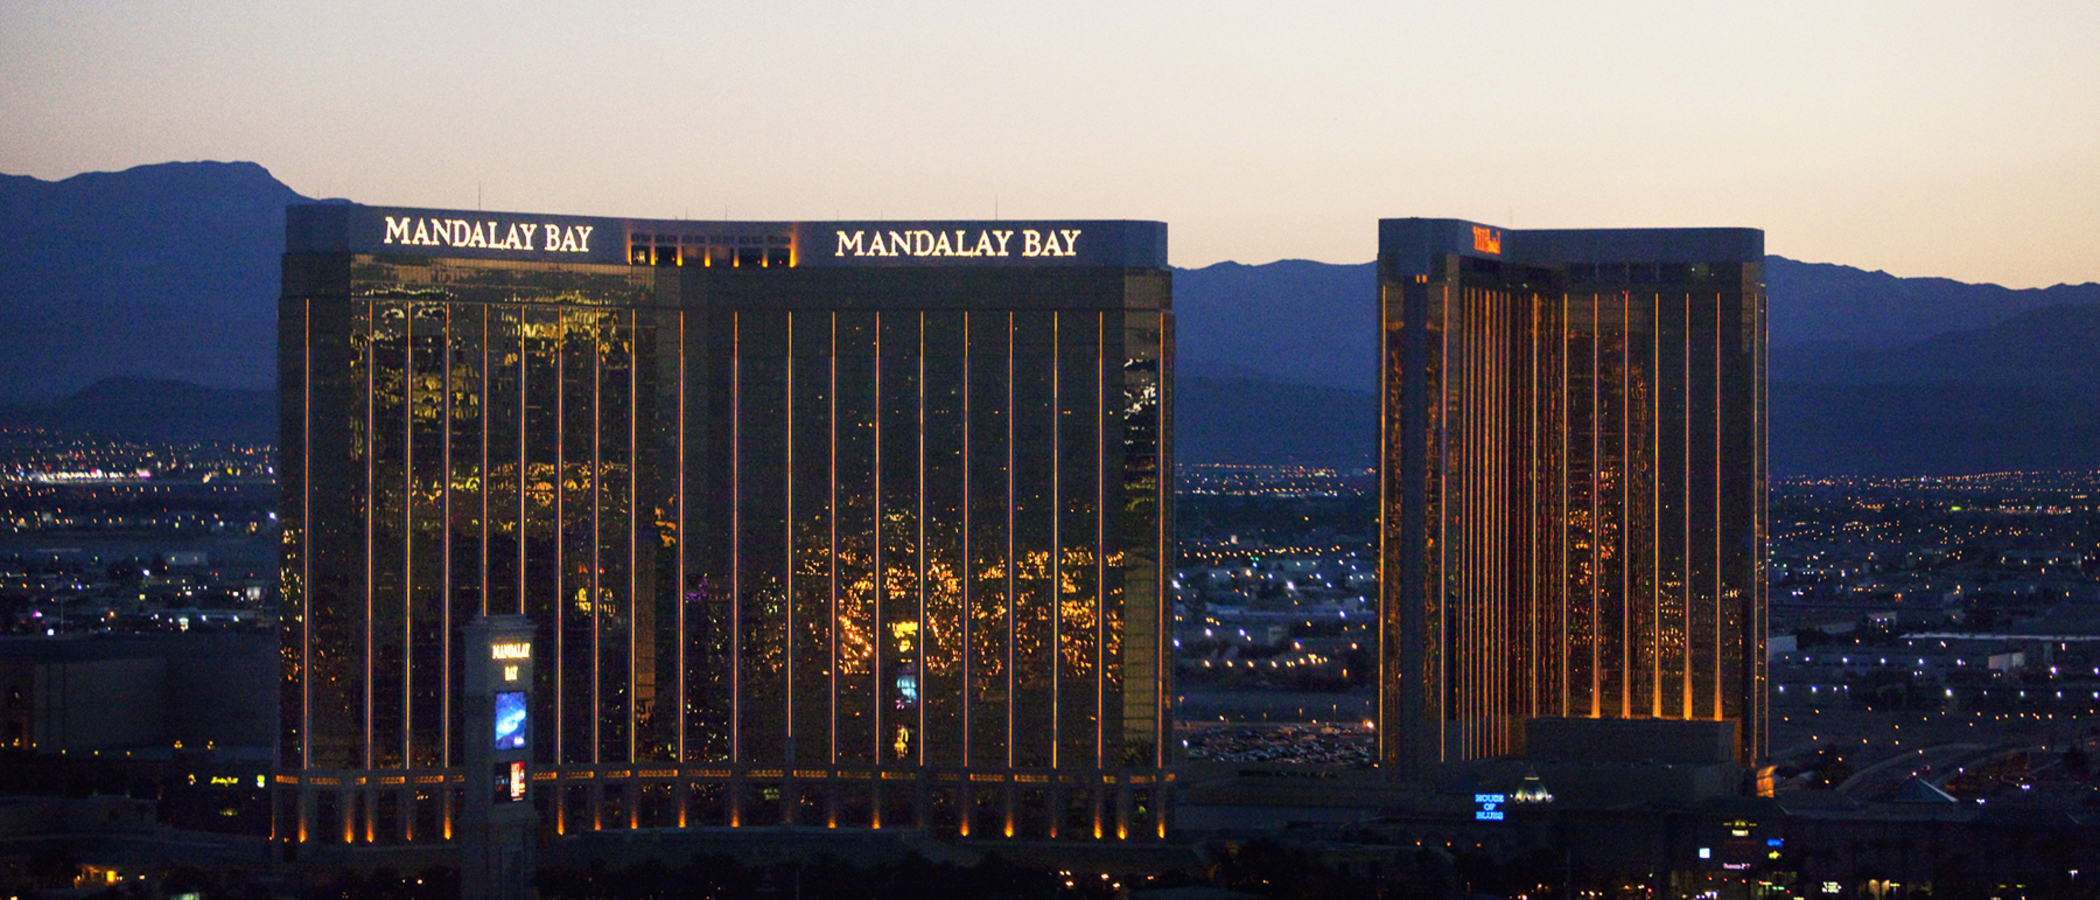 HR, Safety Experts Identify Lessons from Las Vegas Tragedy